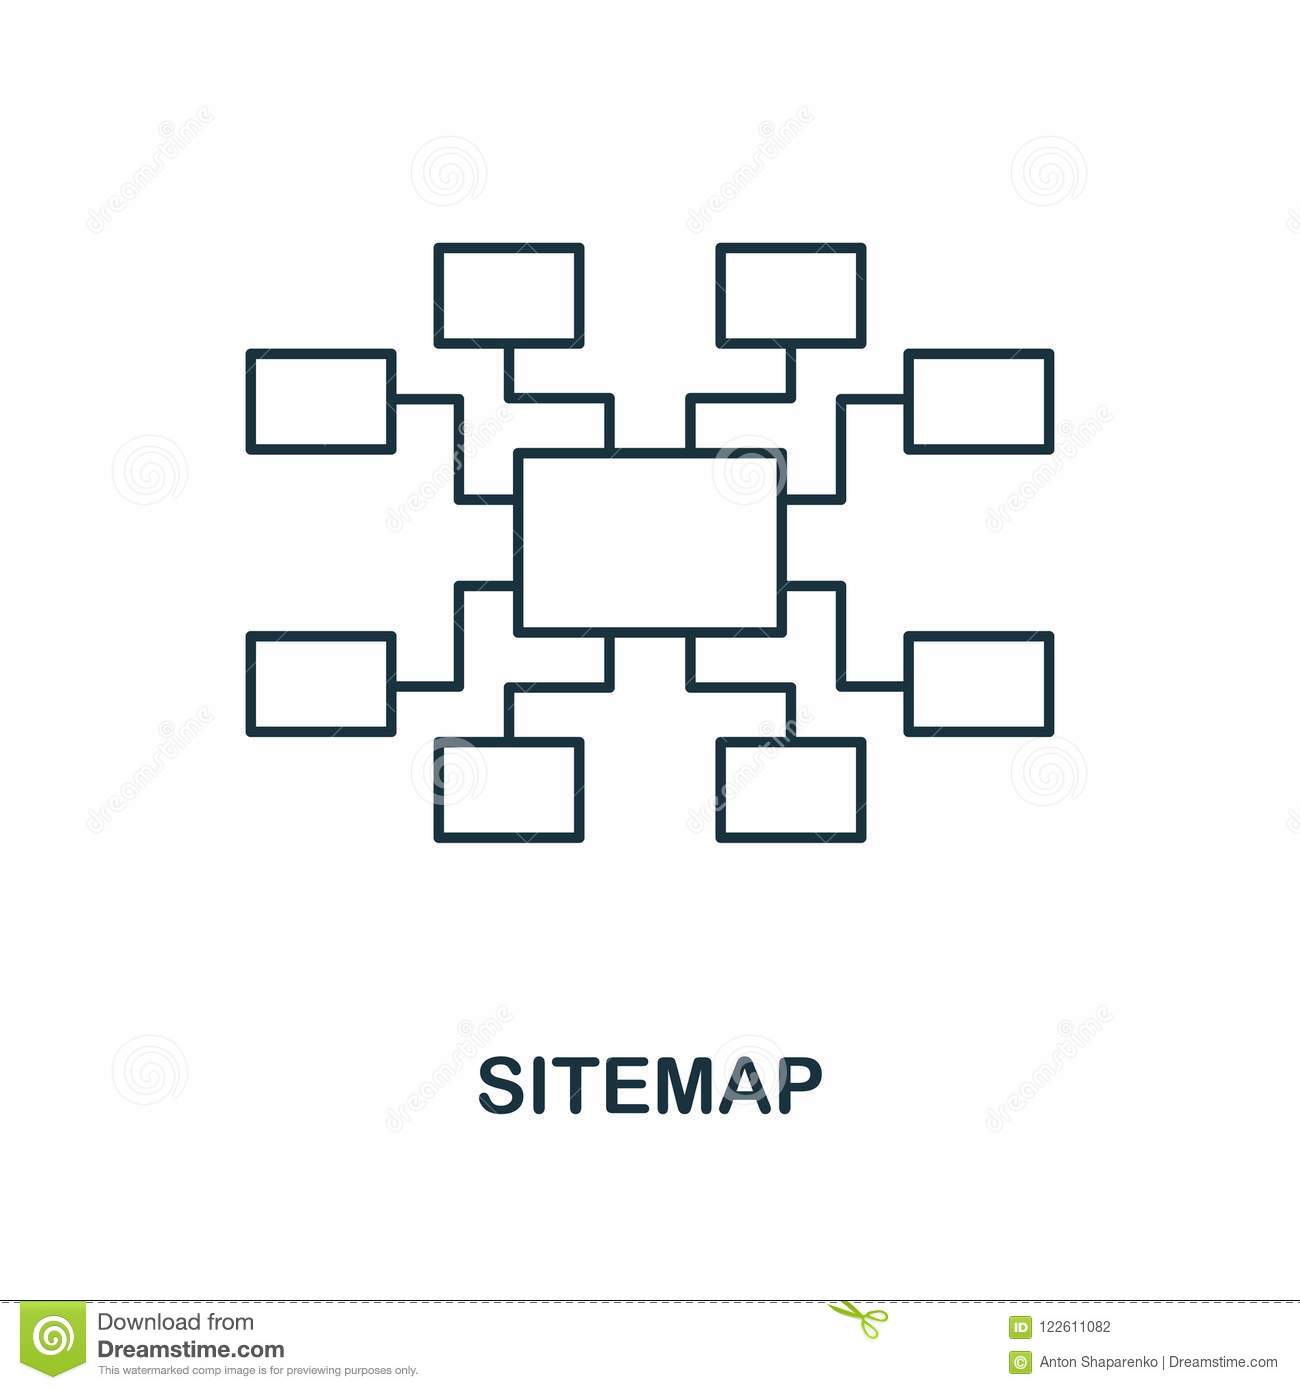 Sitemap creative icon. Simple element illustration. Sitemap concept symbol design from seo collection. Perfect for web design, app